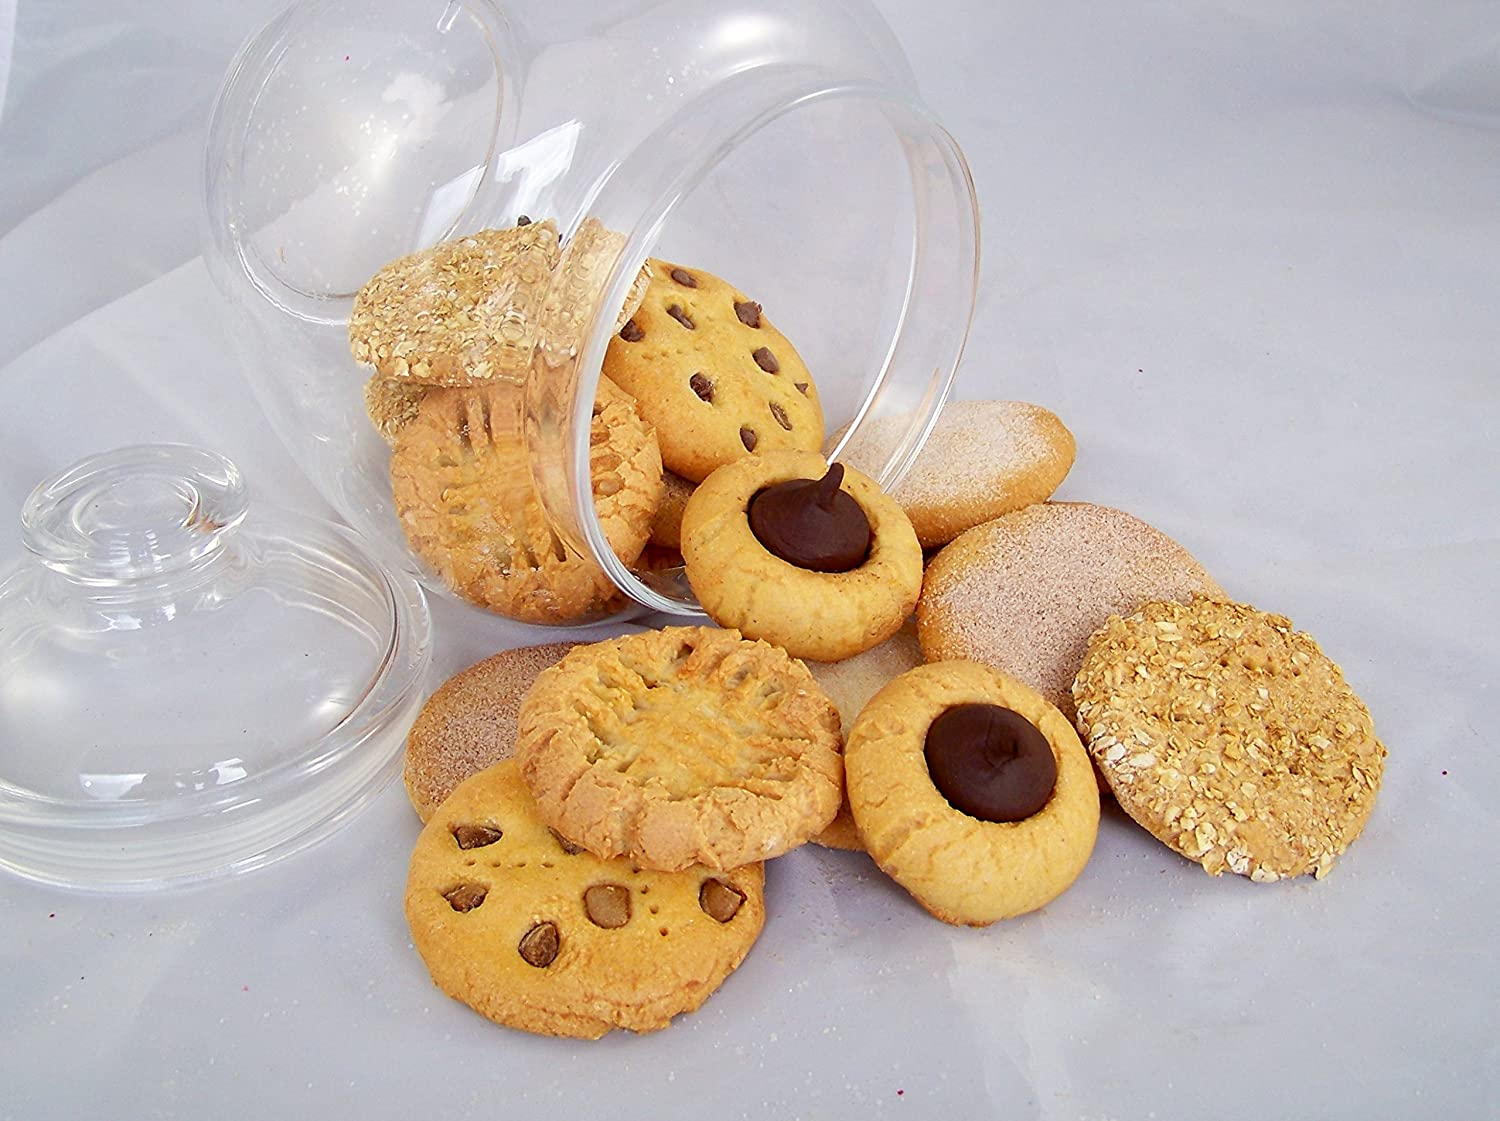 Food Decor Assortment of 12 Artificial Cookies Faux Bakery Replica Biscuits